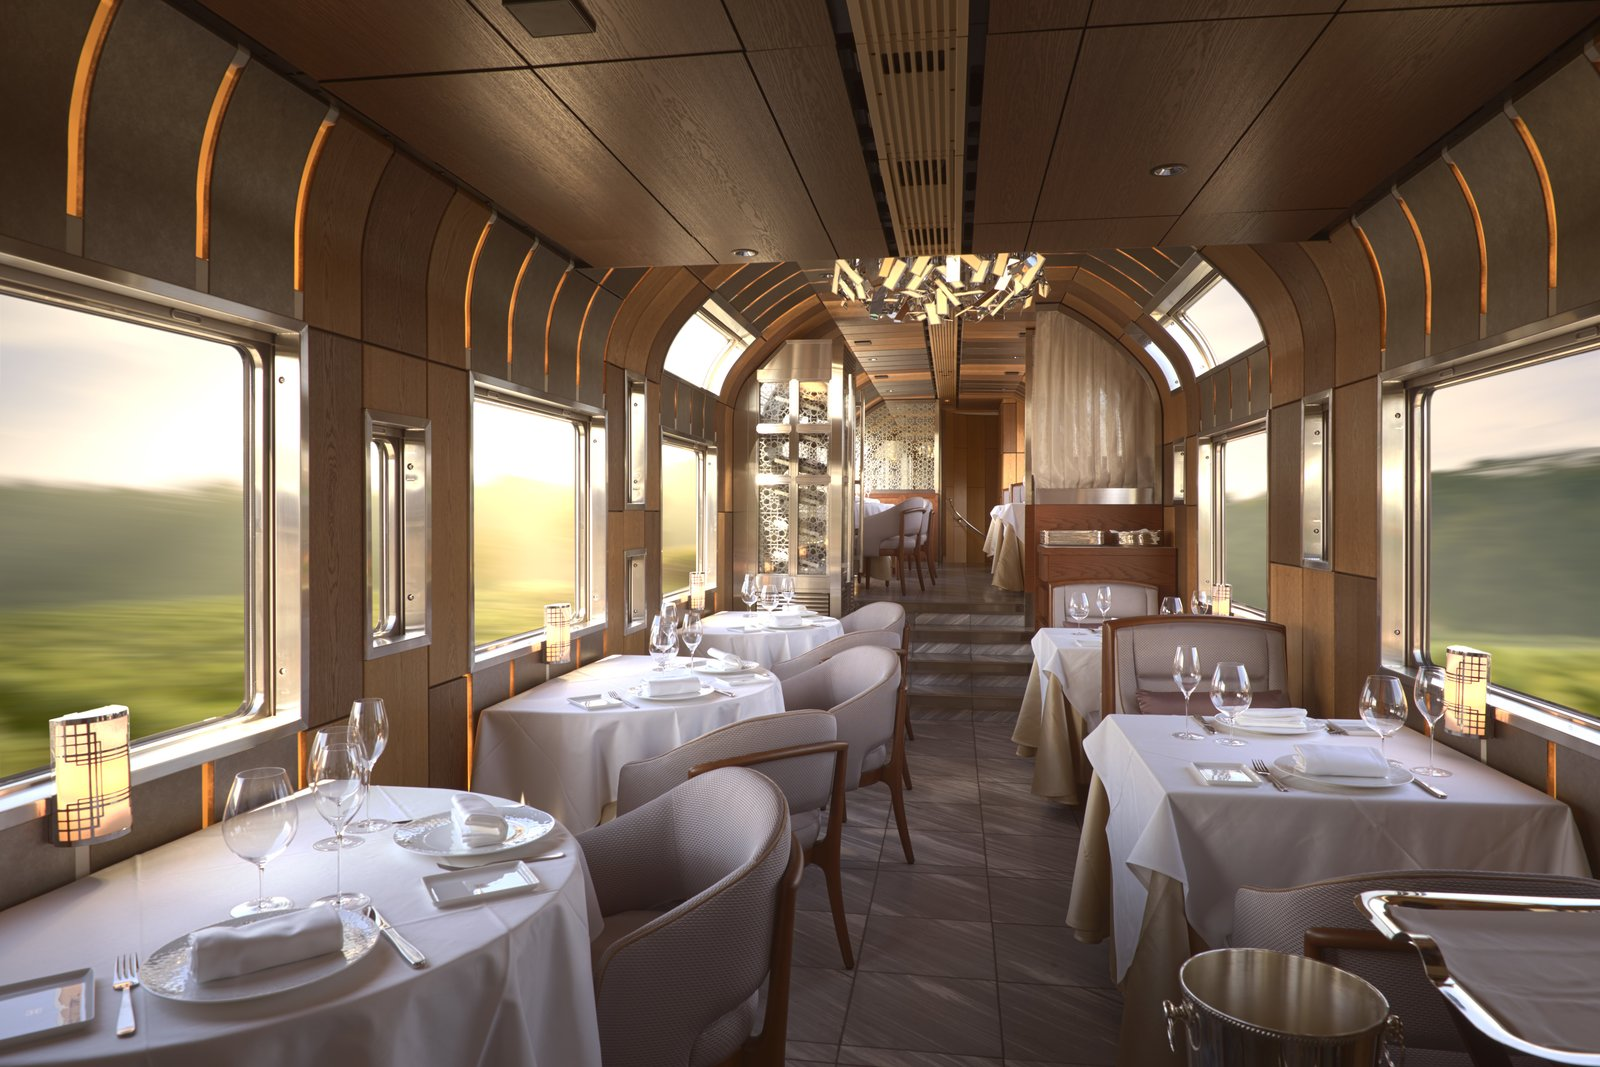 Dining Room, Chair, Table, Pendant Lighting, Ceiling Lighting, and Recessed Lighting  Photo 10 of 14 in Journey Through Eastern Japan on a Luxury Sleeper Train